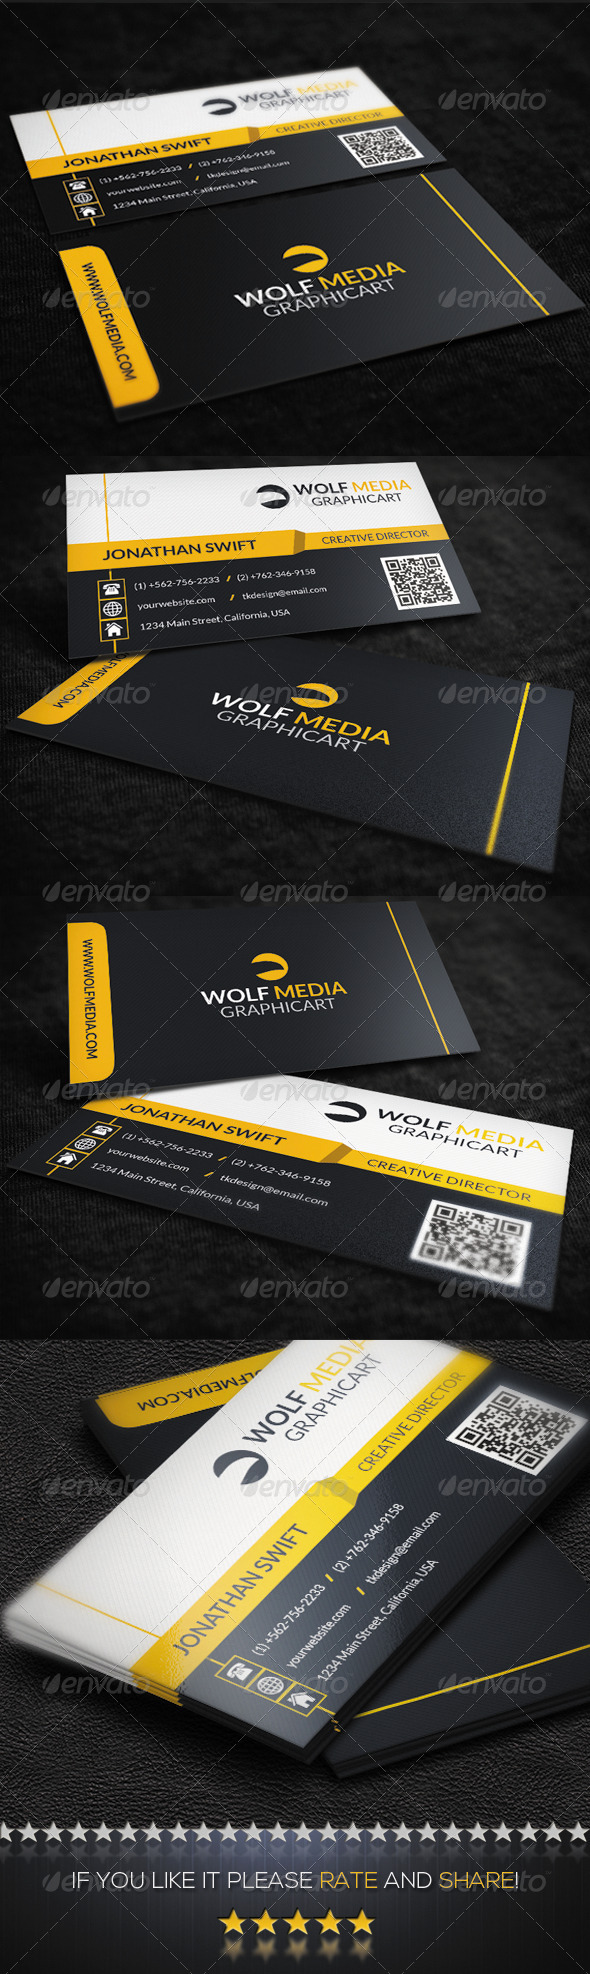 GraphicRiver Modern Corporate Business Card 8545823